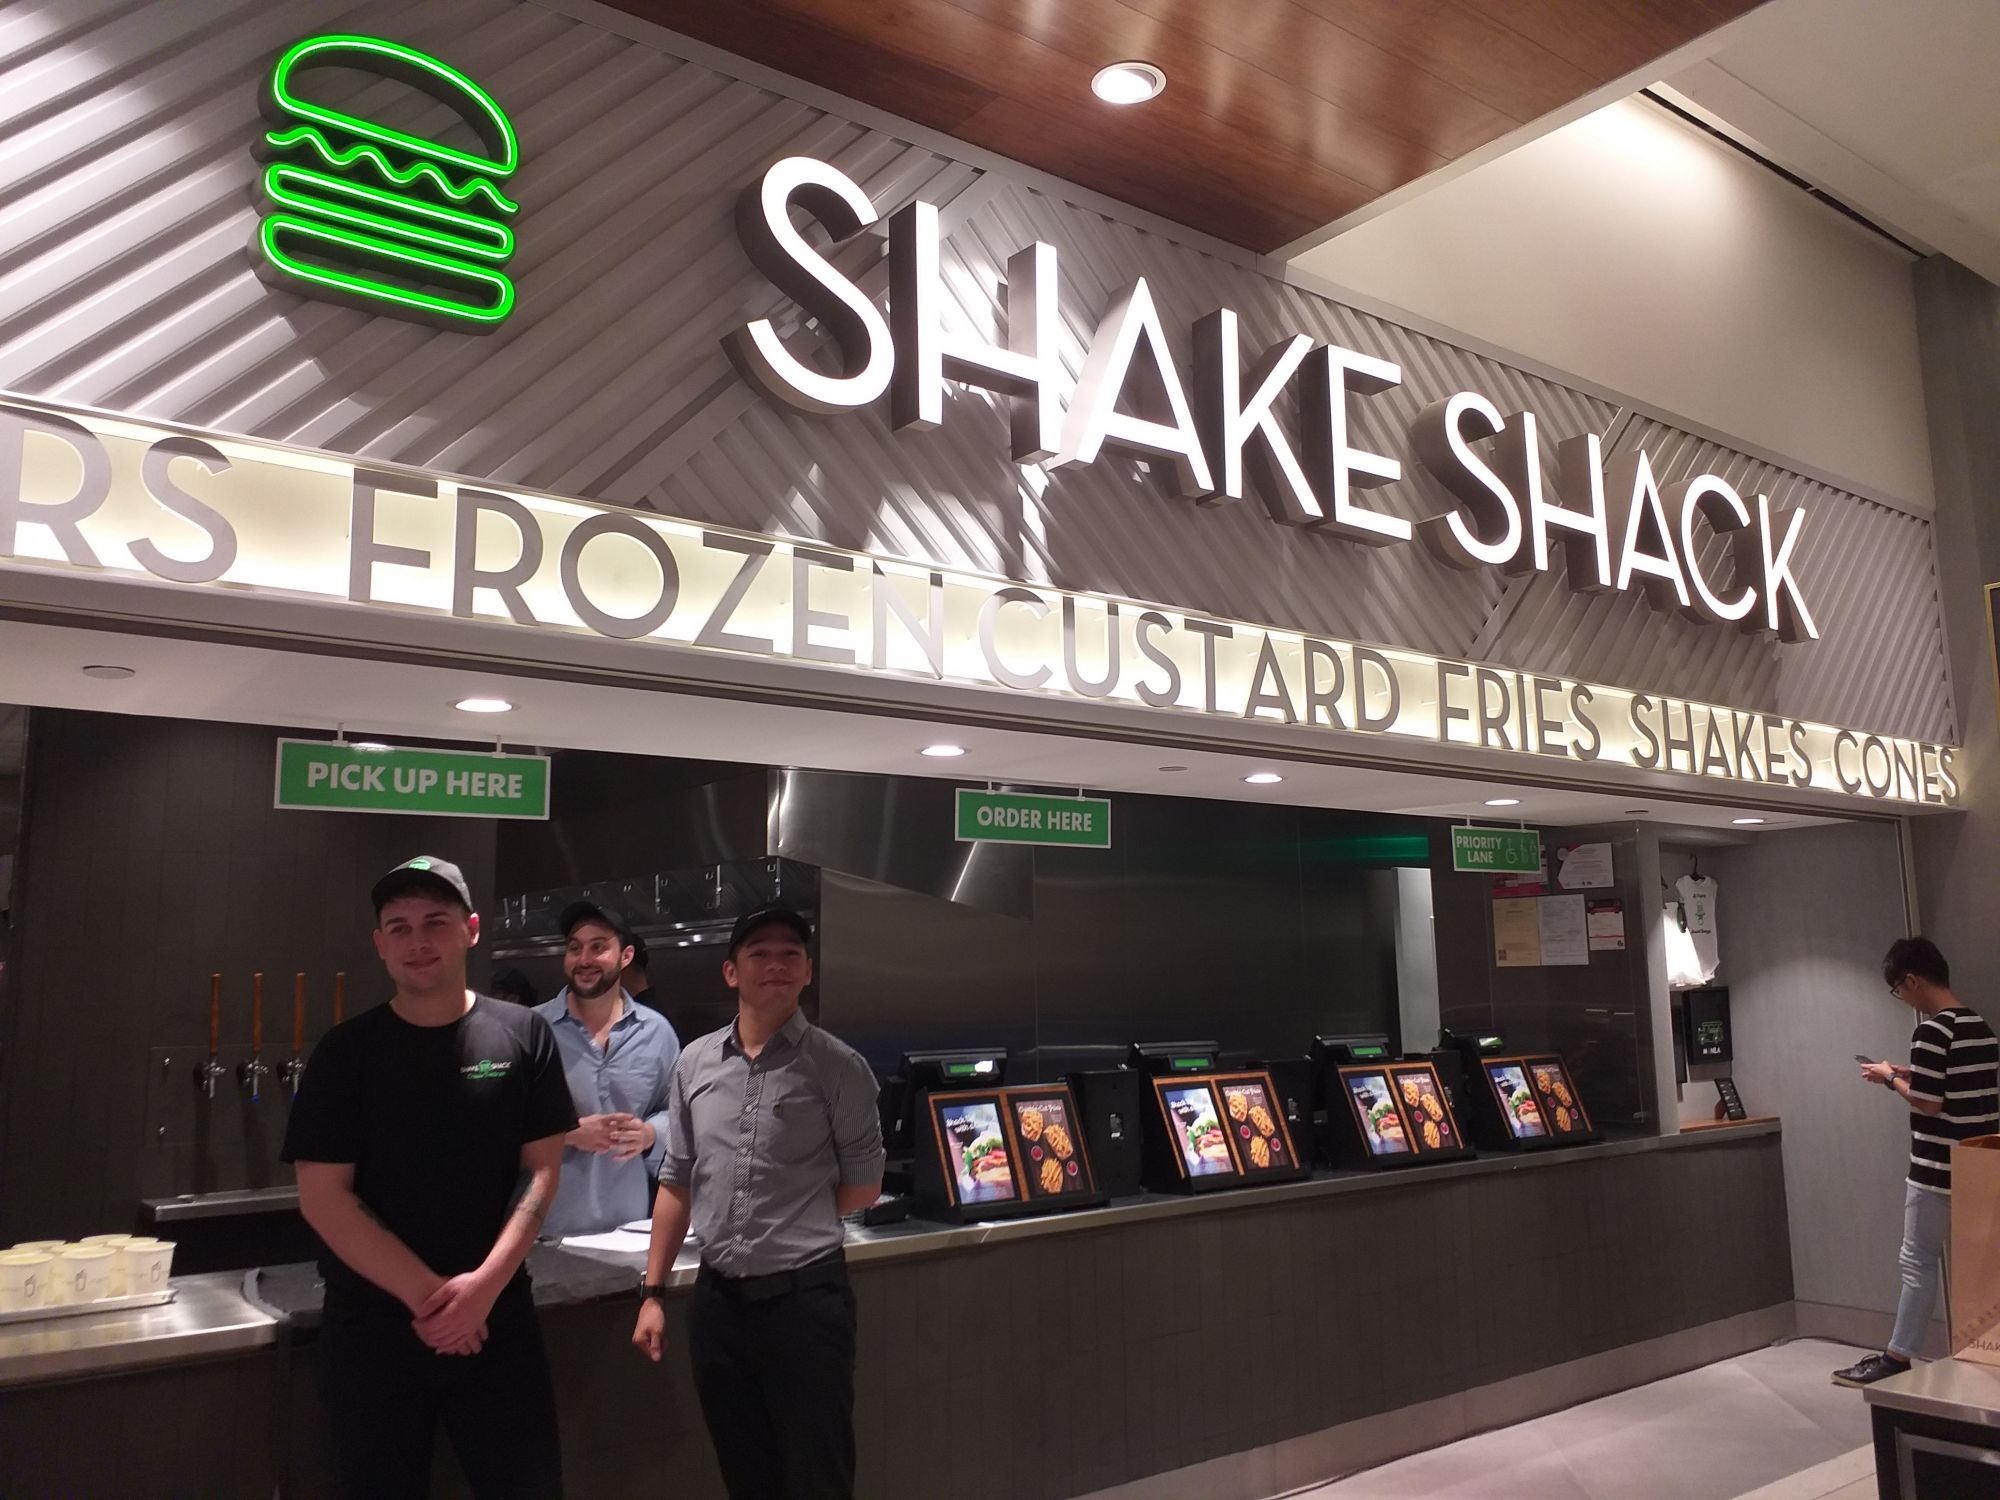 It's Official: Shake Shack Opens in the Philippines on 10 May